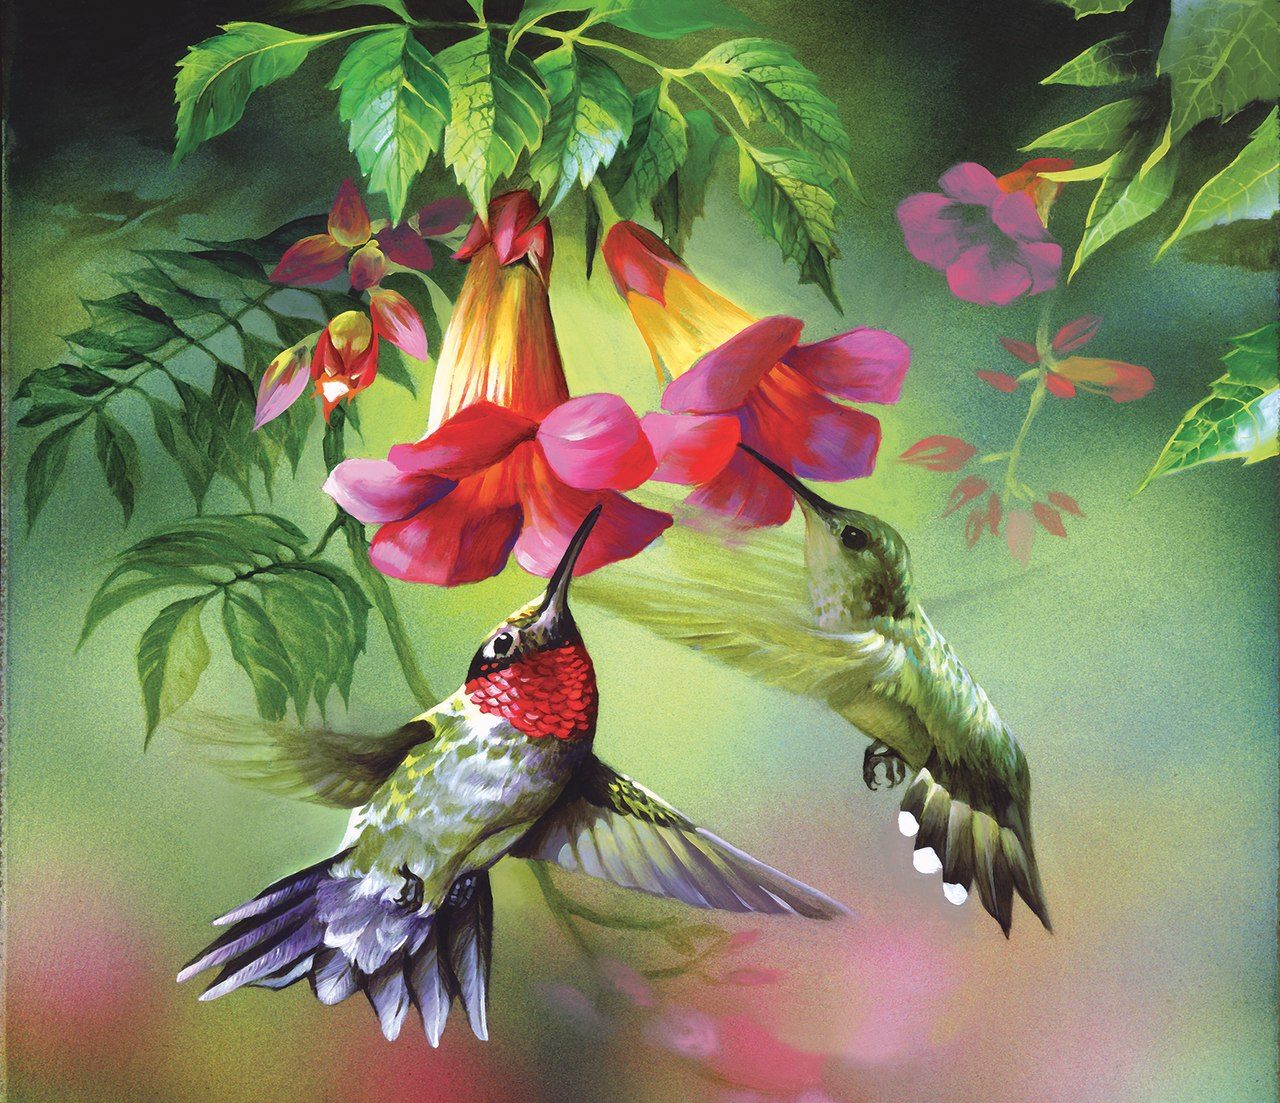 Hummingbirds - 25pc Jigsaw Puzzle by Sunsout  			  					NEW